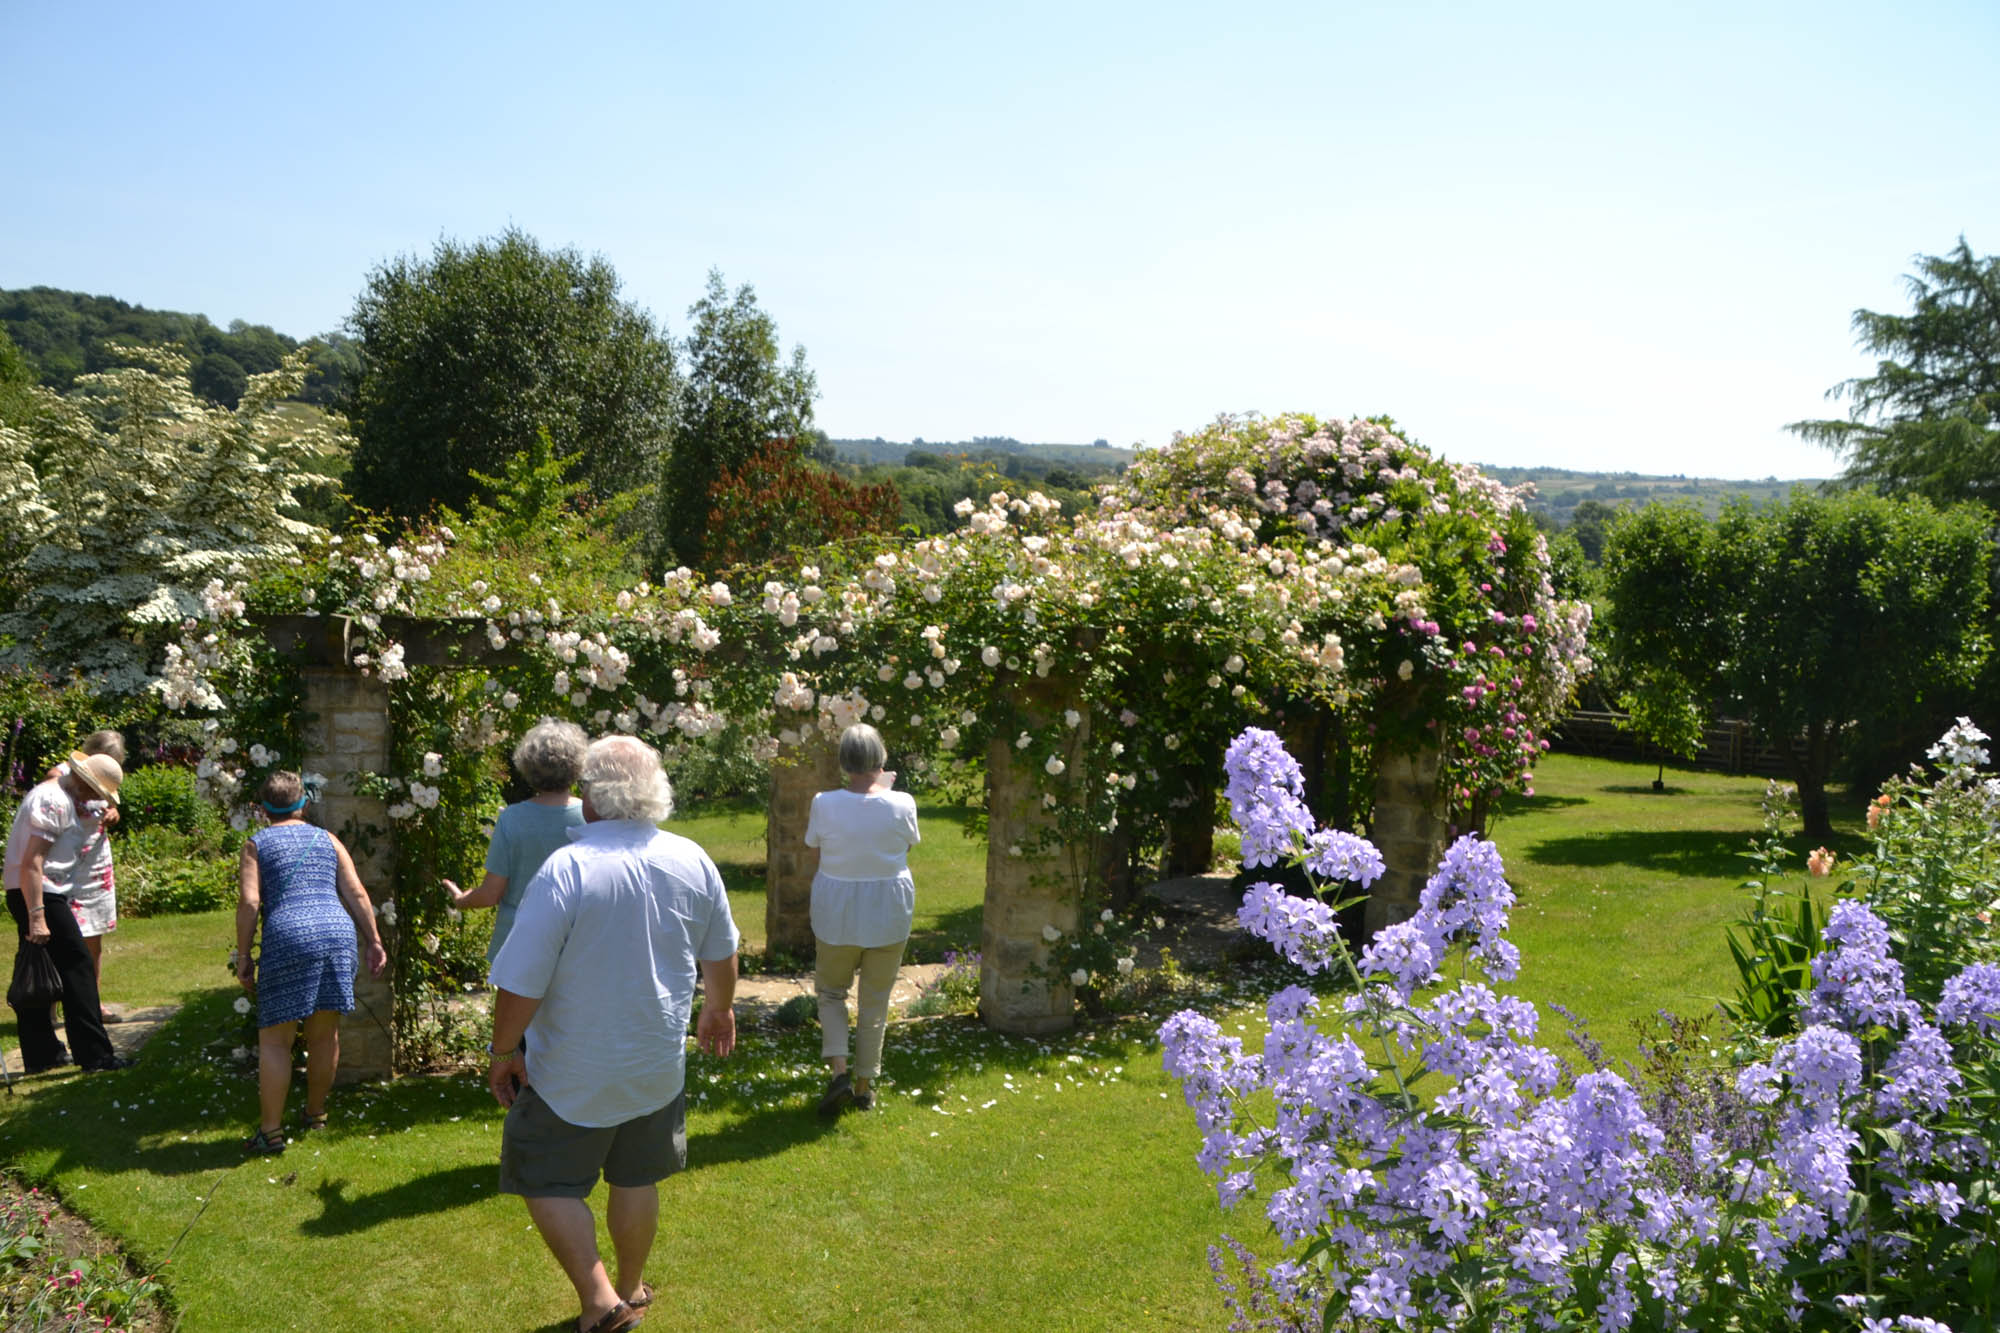 GArden tour group looking at a rose arbor in England